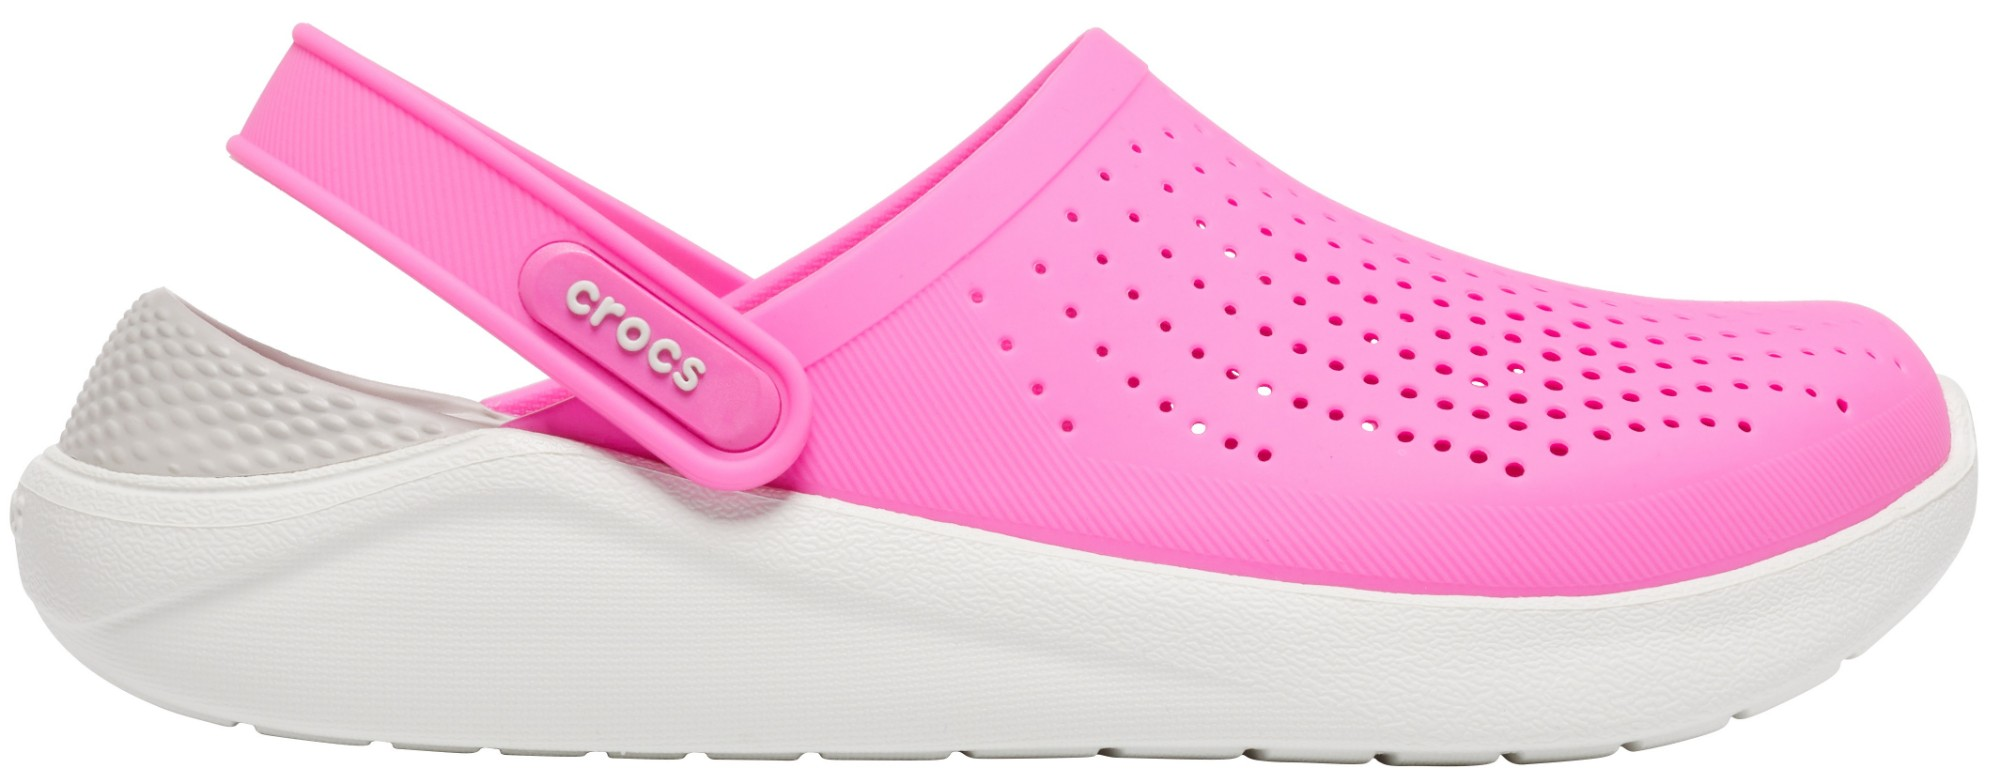 Crocs™ LiteRide Clog Electric Pink/Almost White 39,5